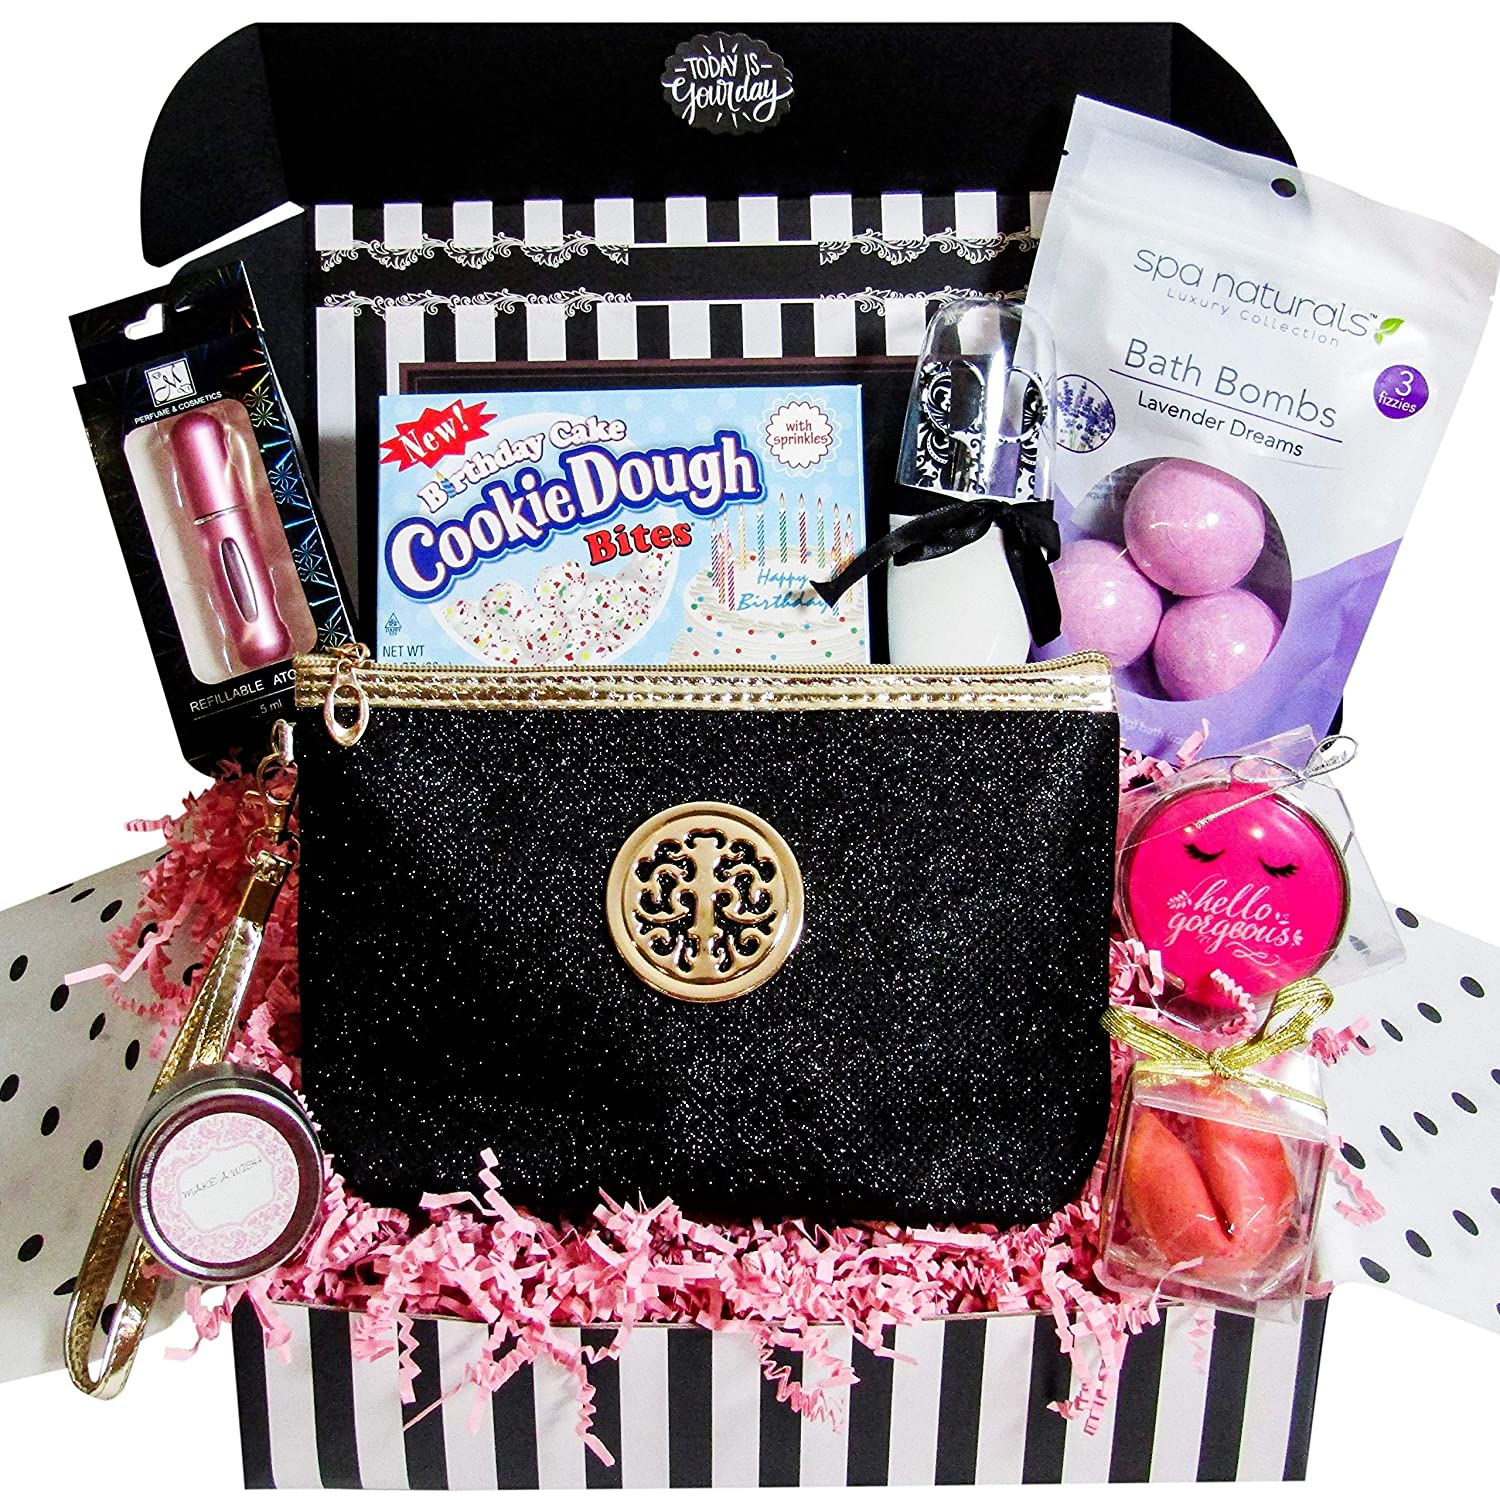 Women S Birthday Gift Basket Surprise Box Set Unique Beauty Kit Idea For Mom Sister Aunt Best Friend Girlfriend Special Present Includes Variety Of Female Beauty Essentials That She Will Love